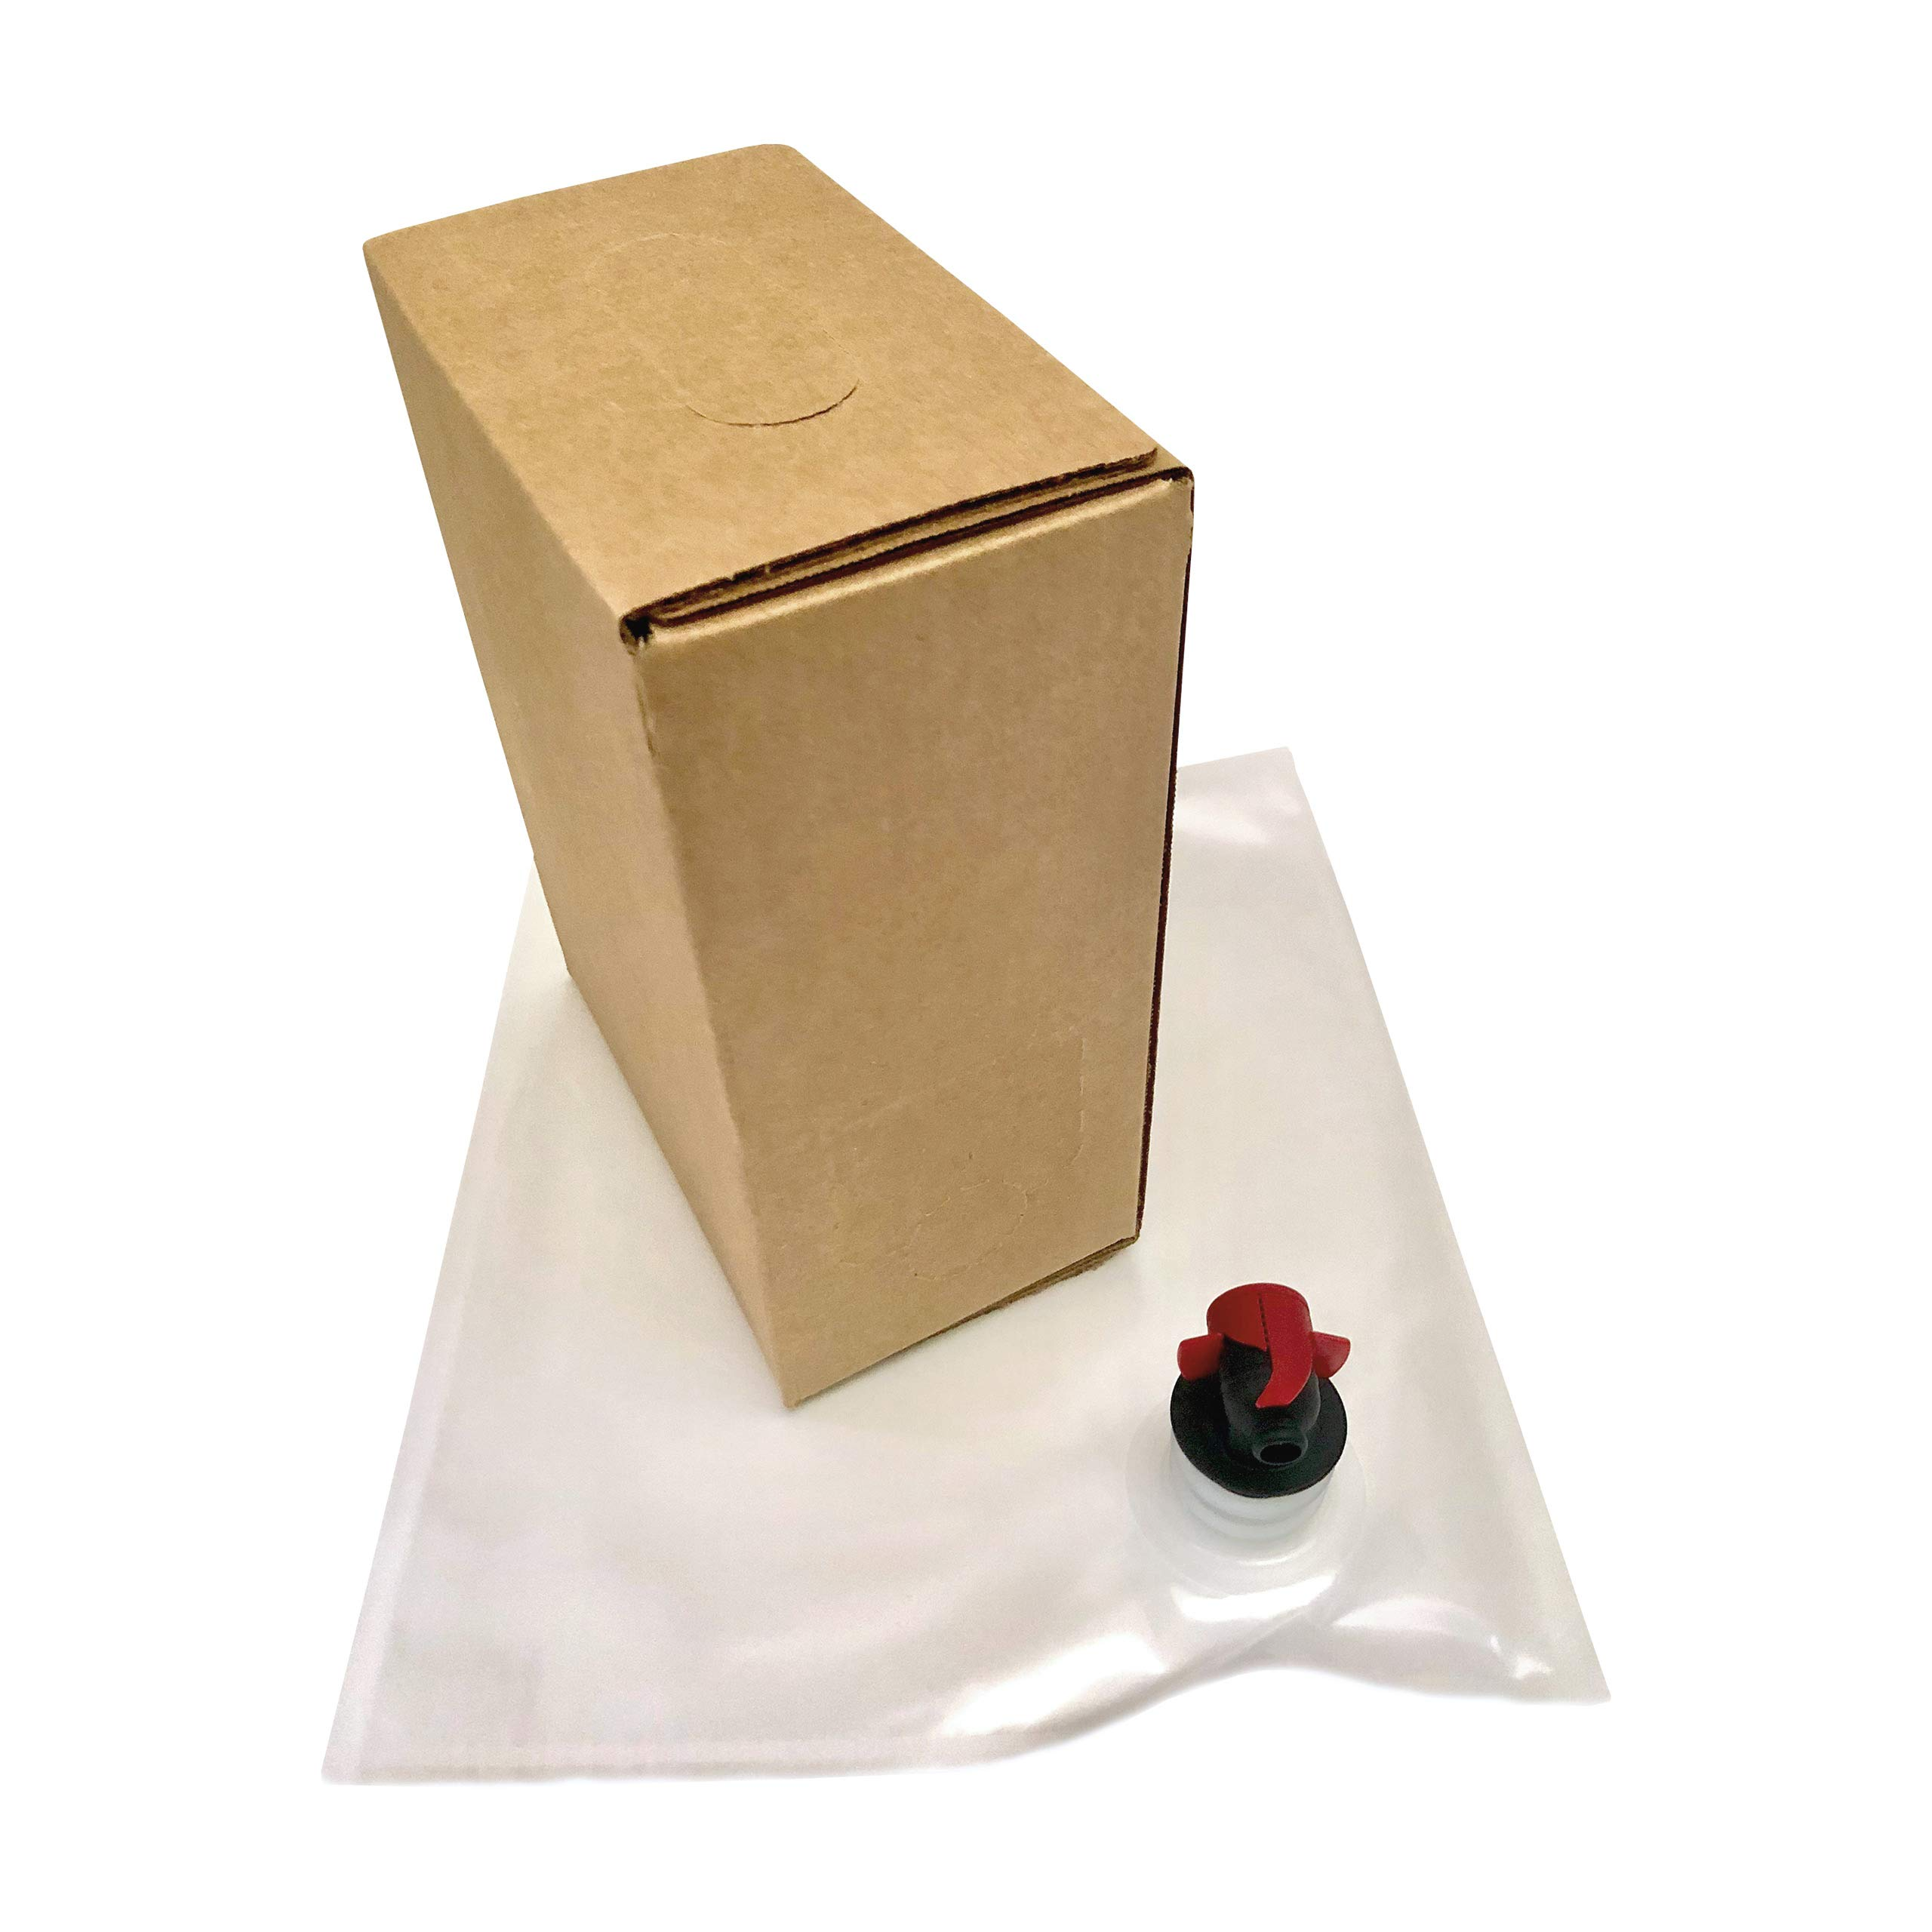 Astropaq Wine Bag-In-Box Kits [Eco-Friendly Wine Bottle Alternative] - Easily Bottle, Dispense & Store Your Wines - Perfect For Home Winemakers (Bag-In-Box Kits, 7x 3L)